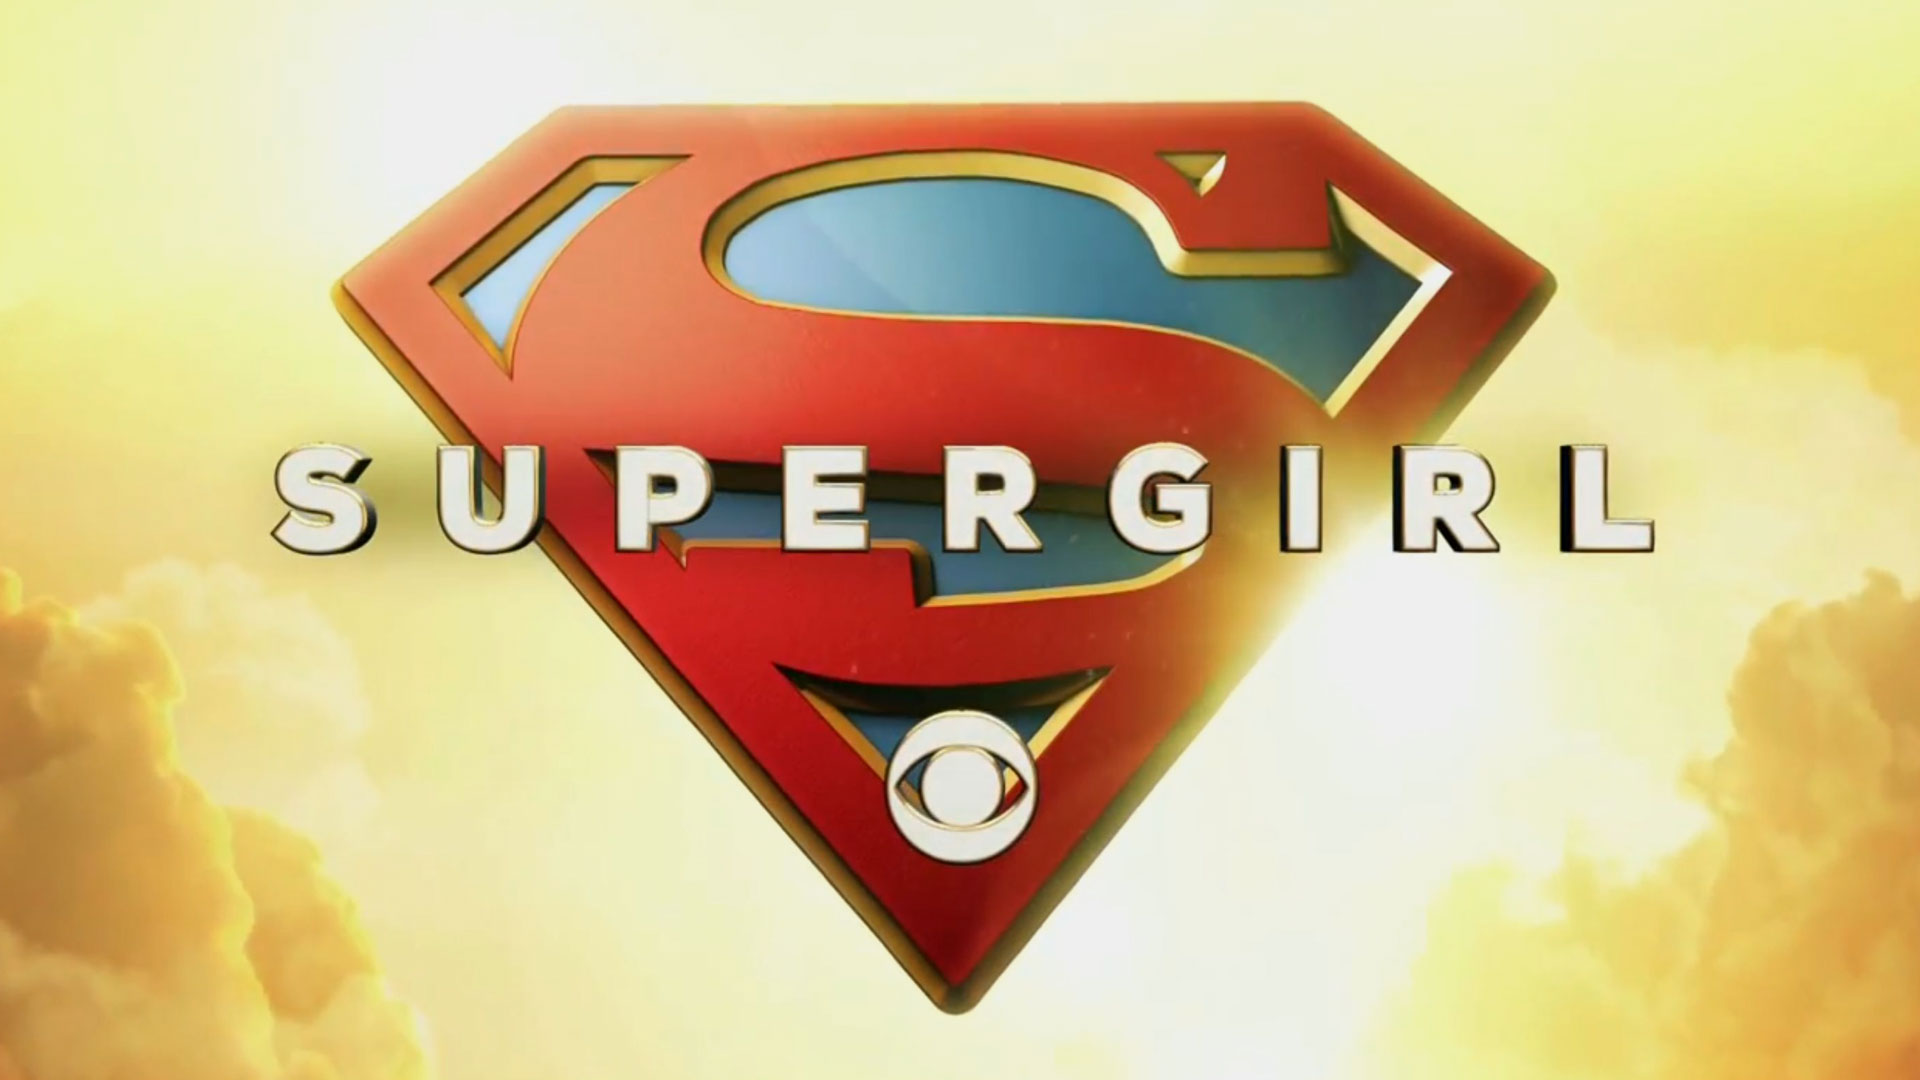 supergirls adoption lens swooping past stereotypes